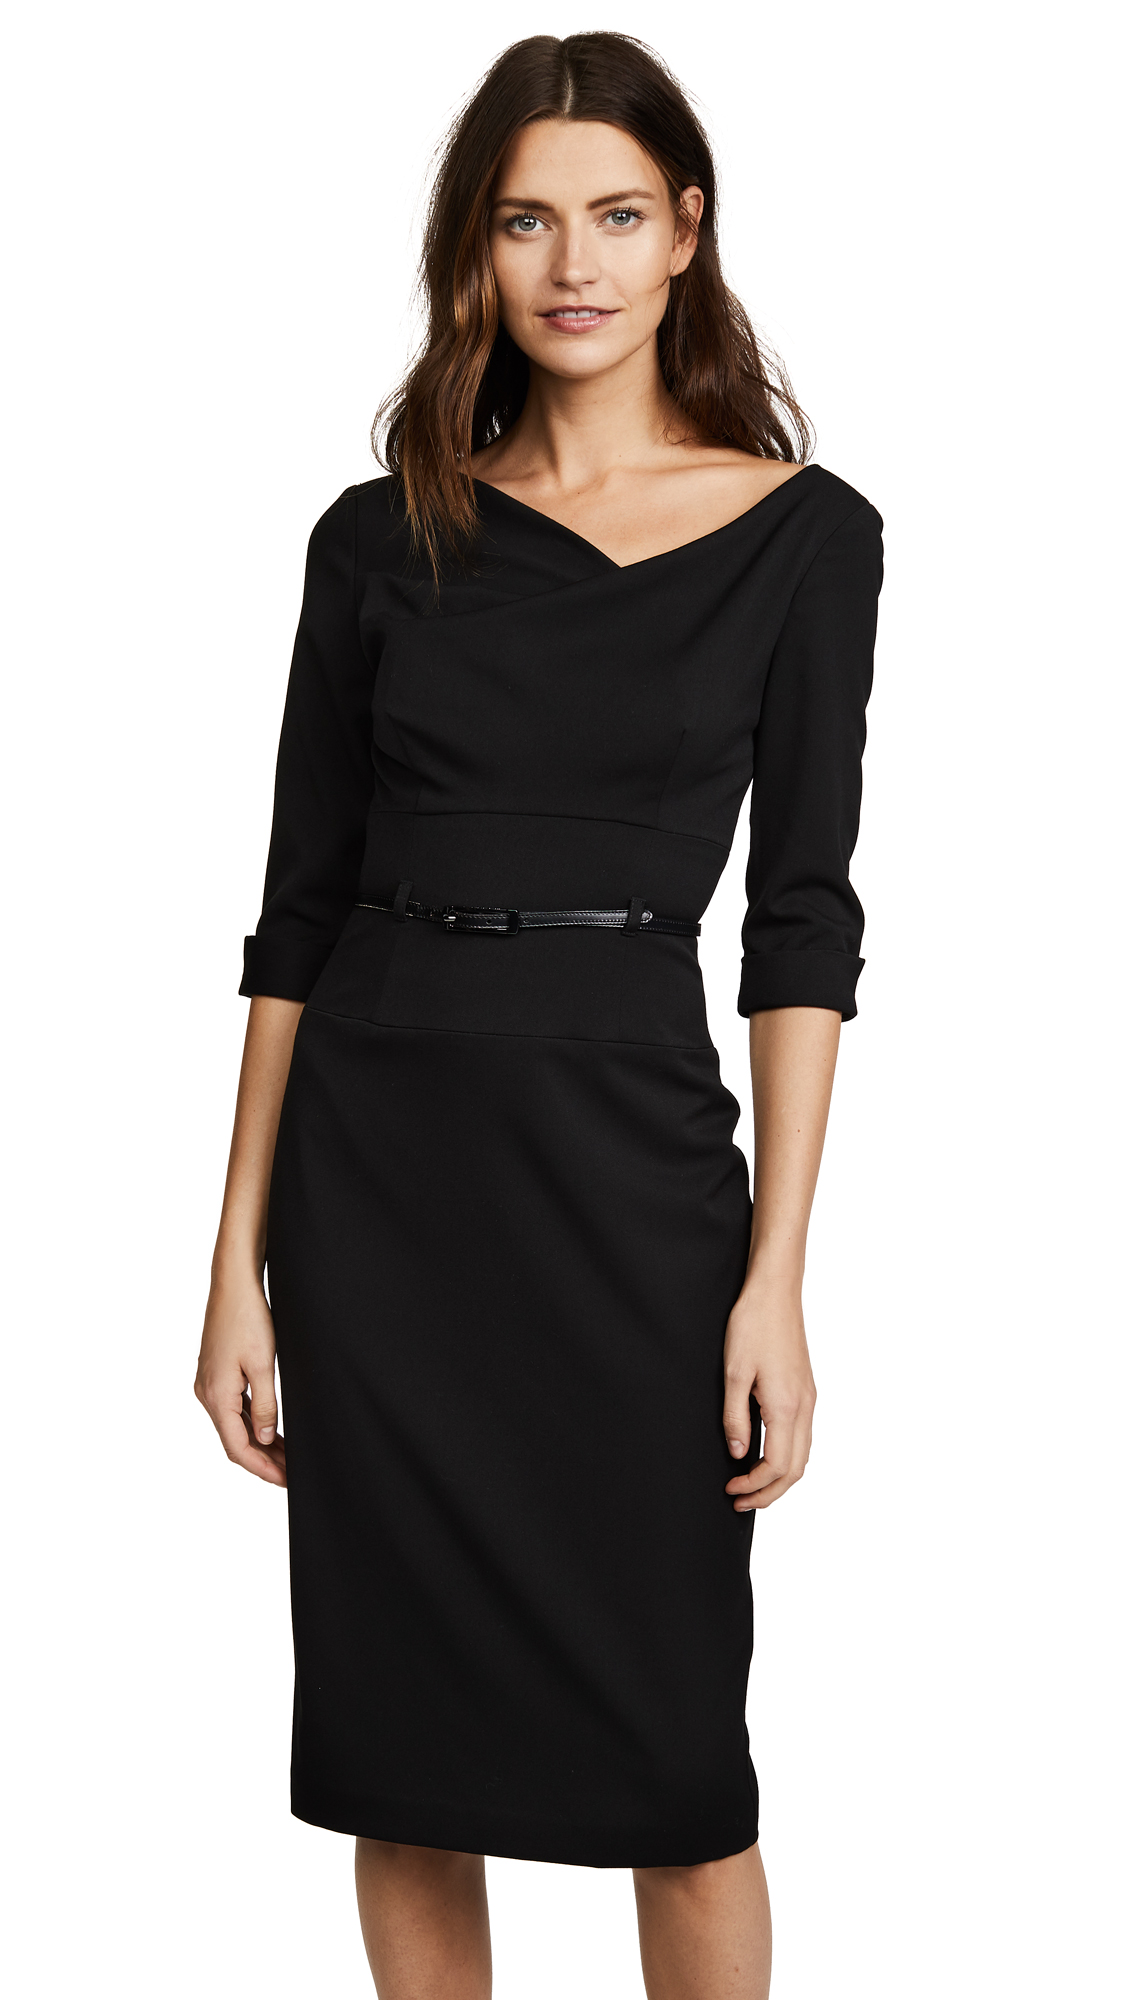 Black Halo 3/4 Sleeve Jackie O Dress In Black